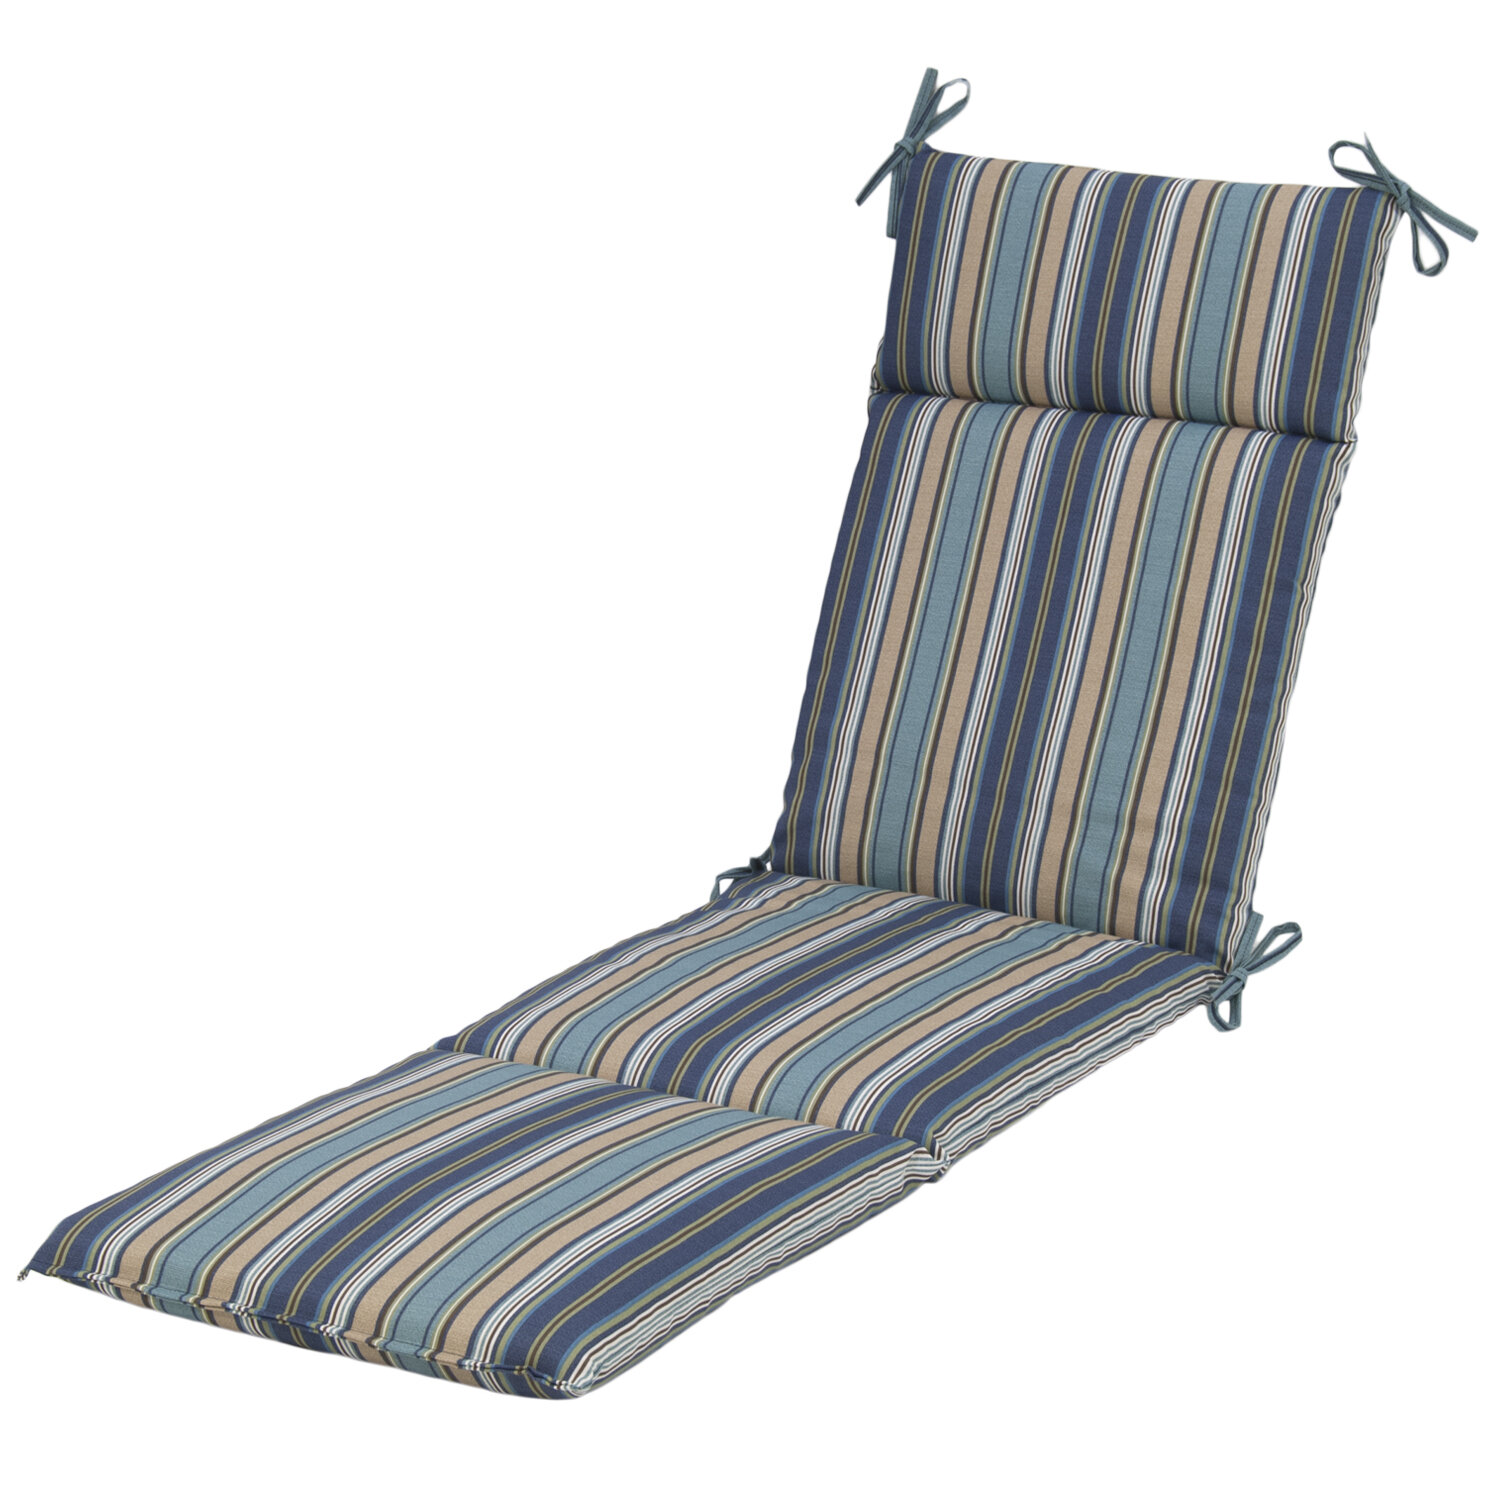 Plantation Patterns Quebec Stripe Pacific Outdoor Chaise ...